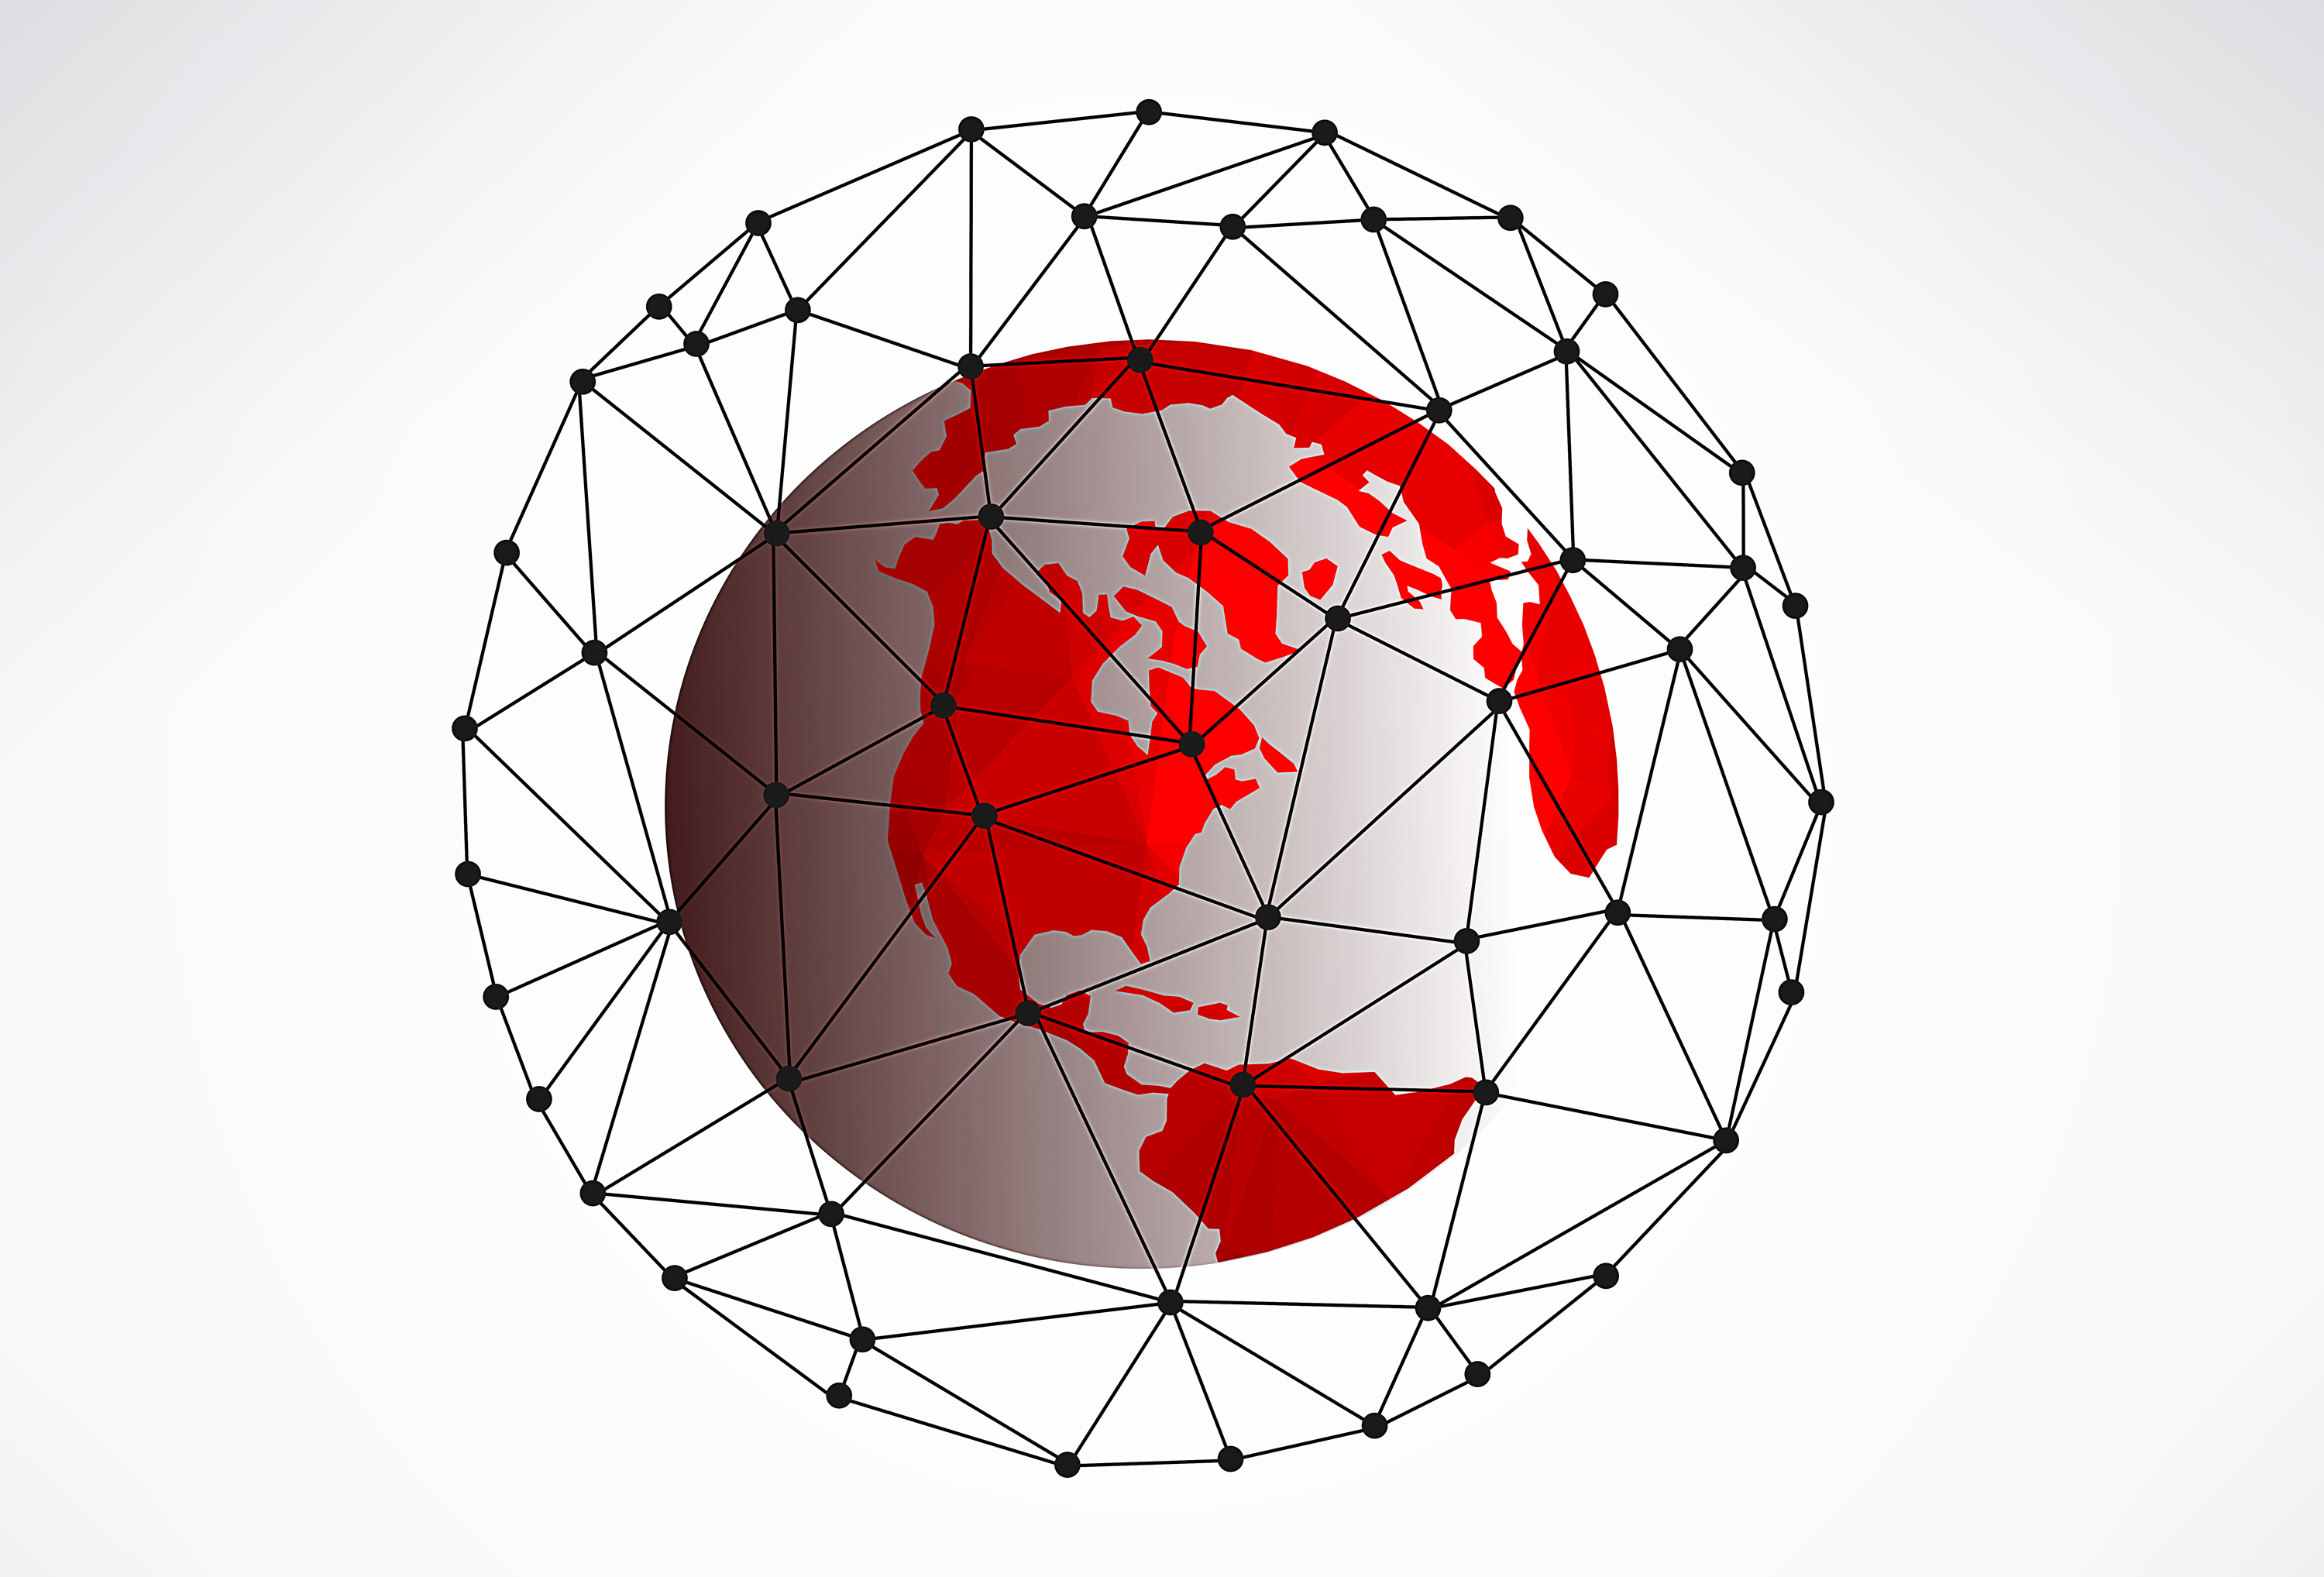 5G enables IoT